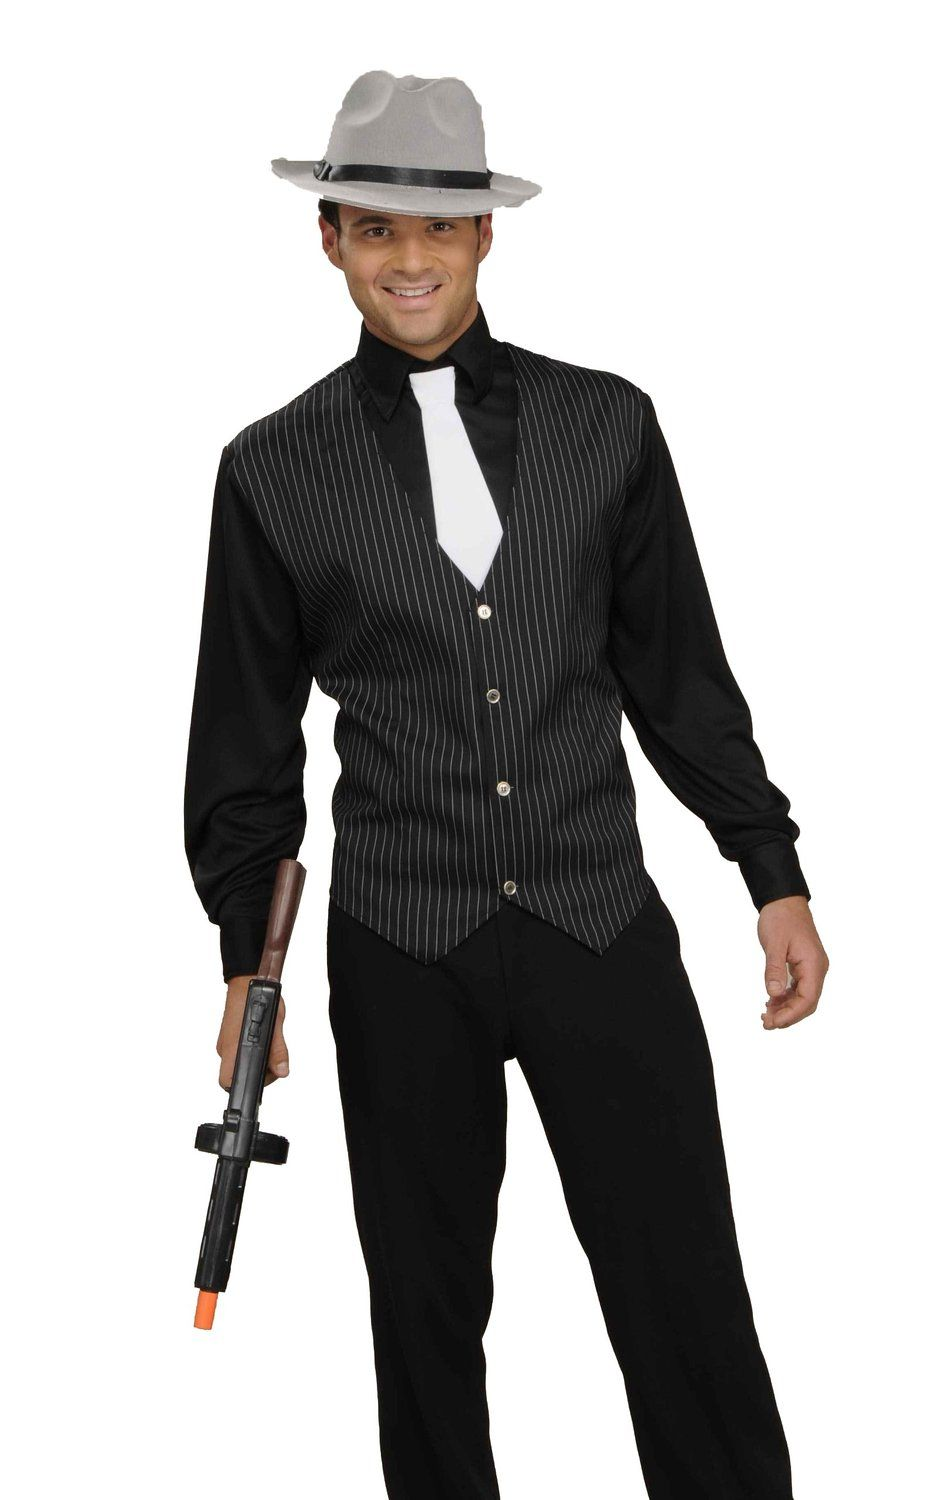 20s gangster outfit for murder mystery game whodunnitmysteriescom - Halloween Mobster Costumes